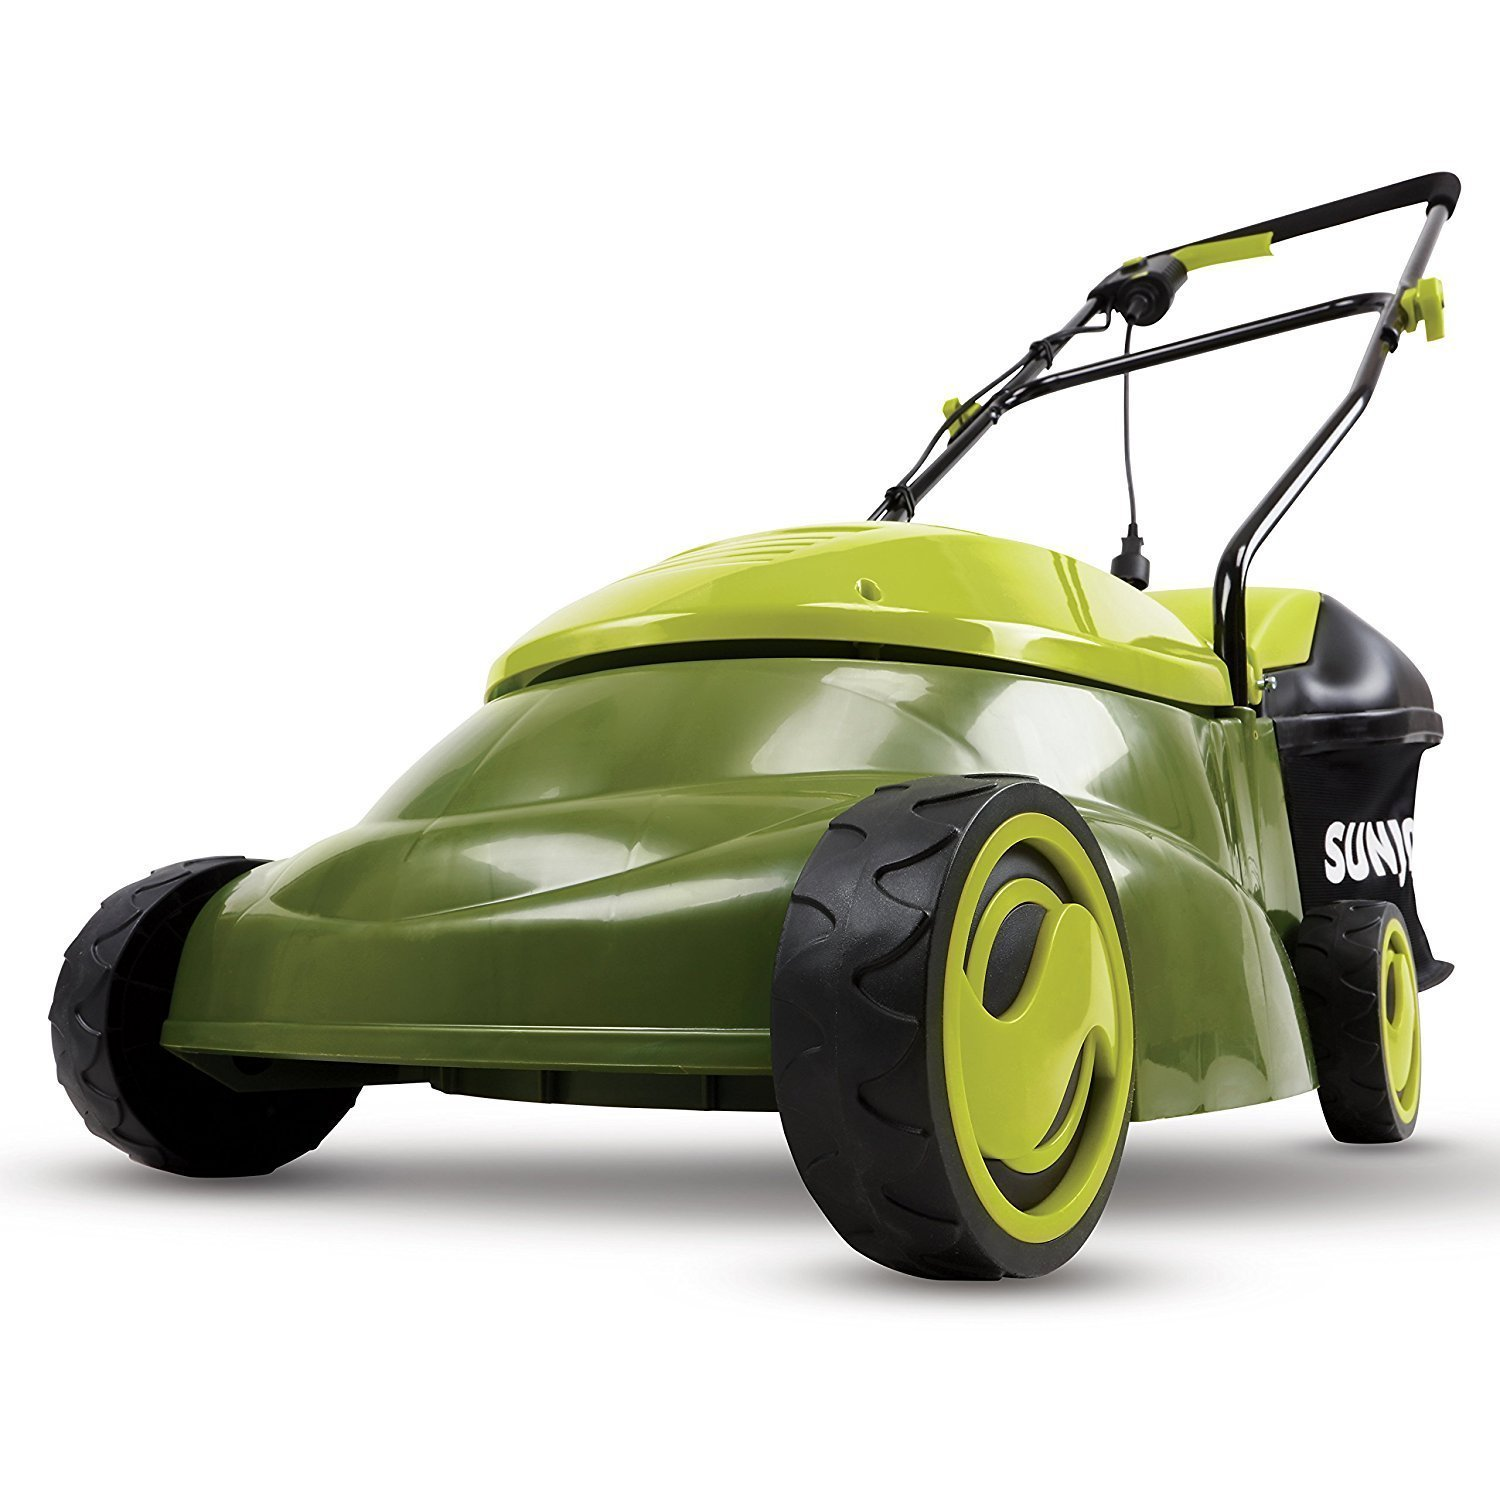 Best Lawn Mower For Small Yard 1 Home Furniture Design